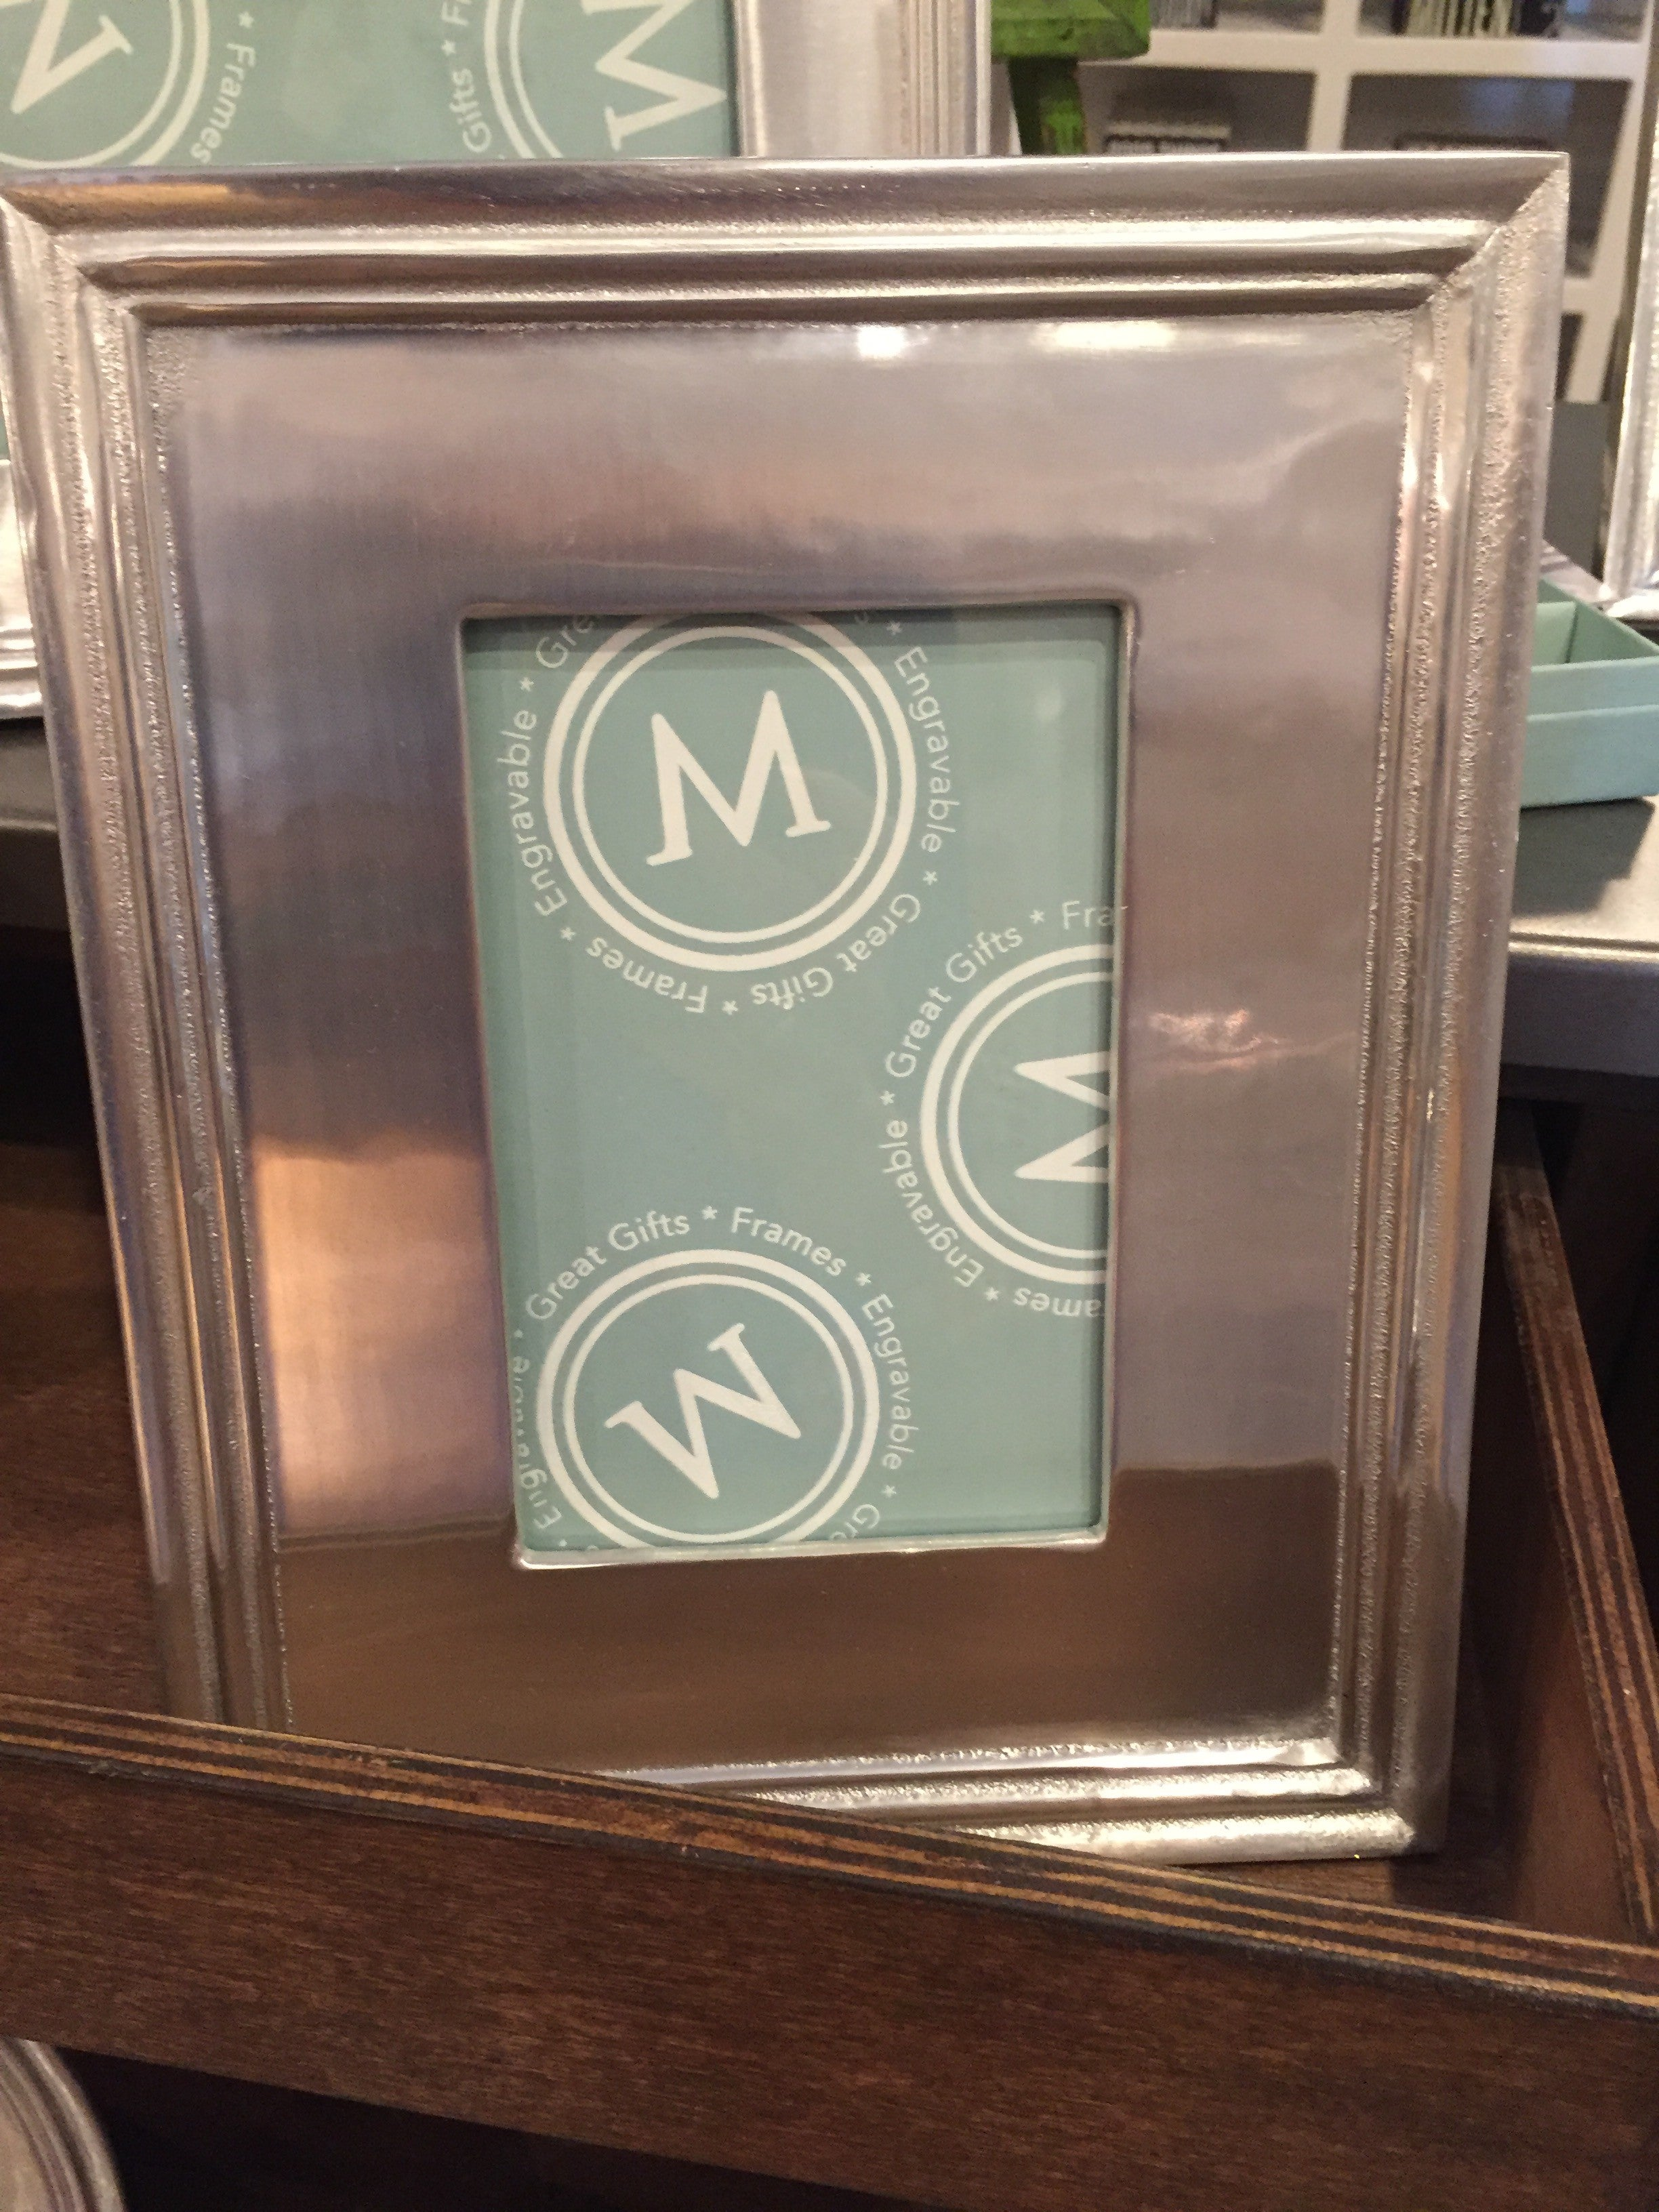 An engraved Mariposa frame is a great way for a grad to display their favorite picture from graduation day.